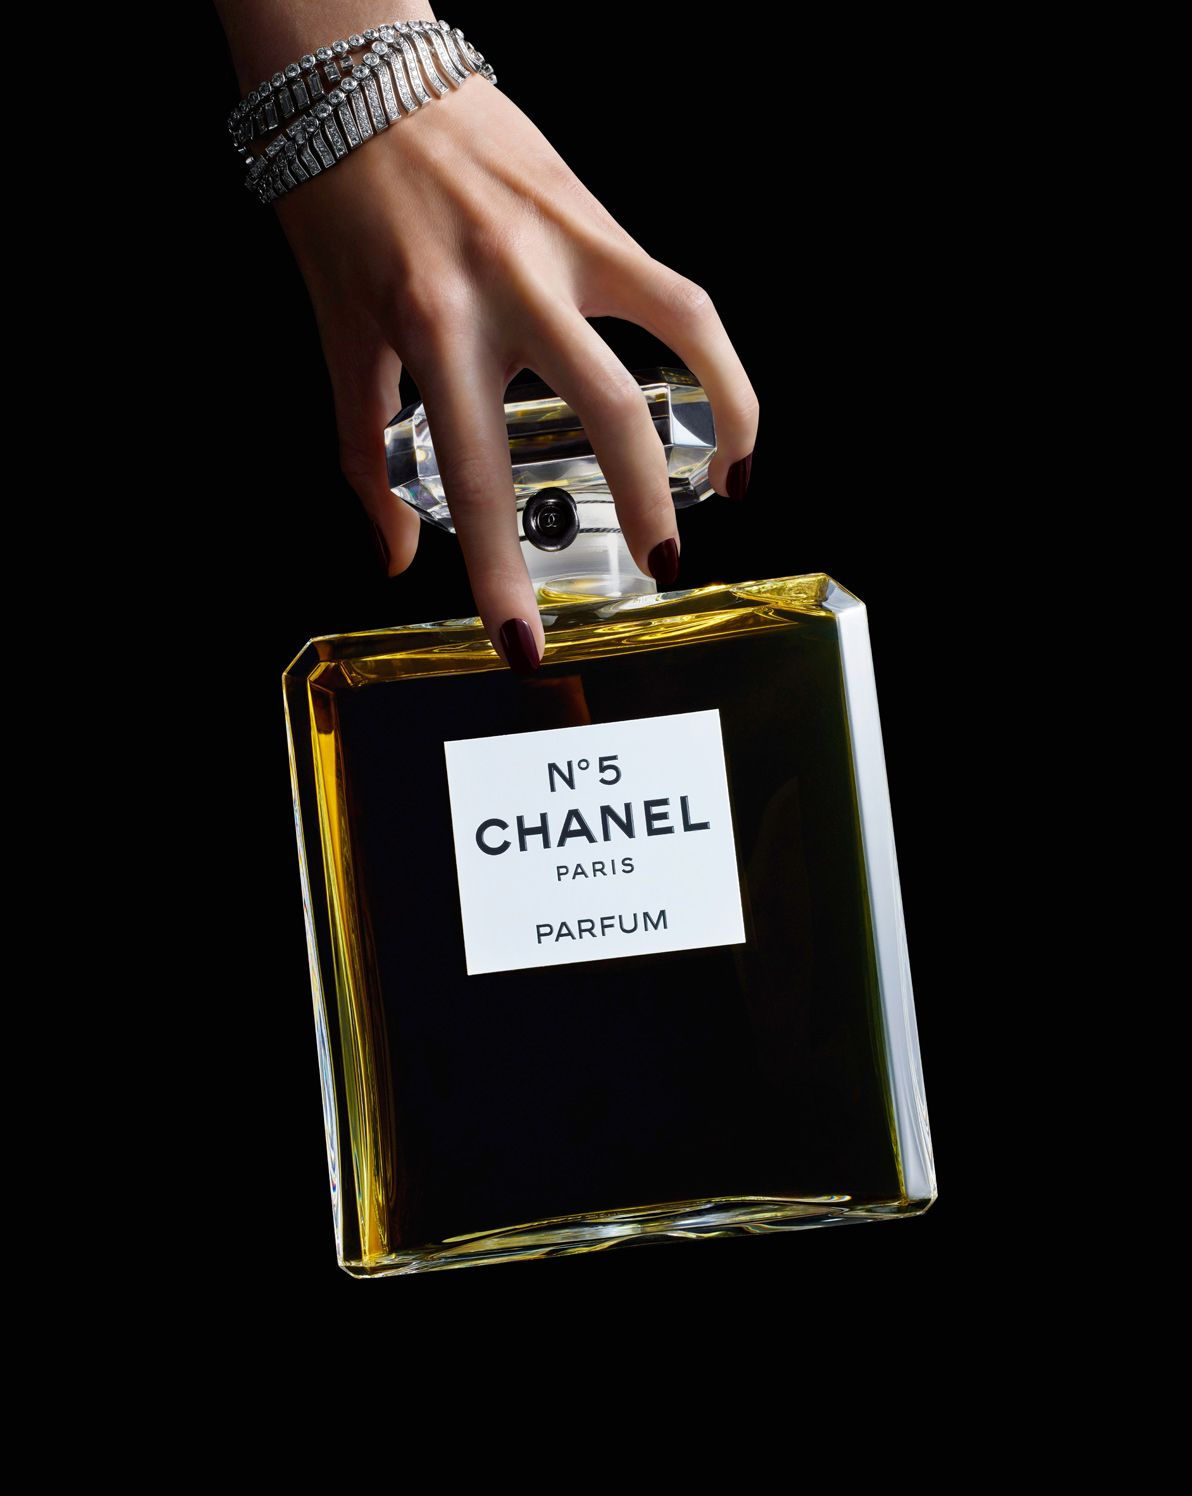 Chanel No. 5 Grand Extrait, Chanel